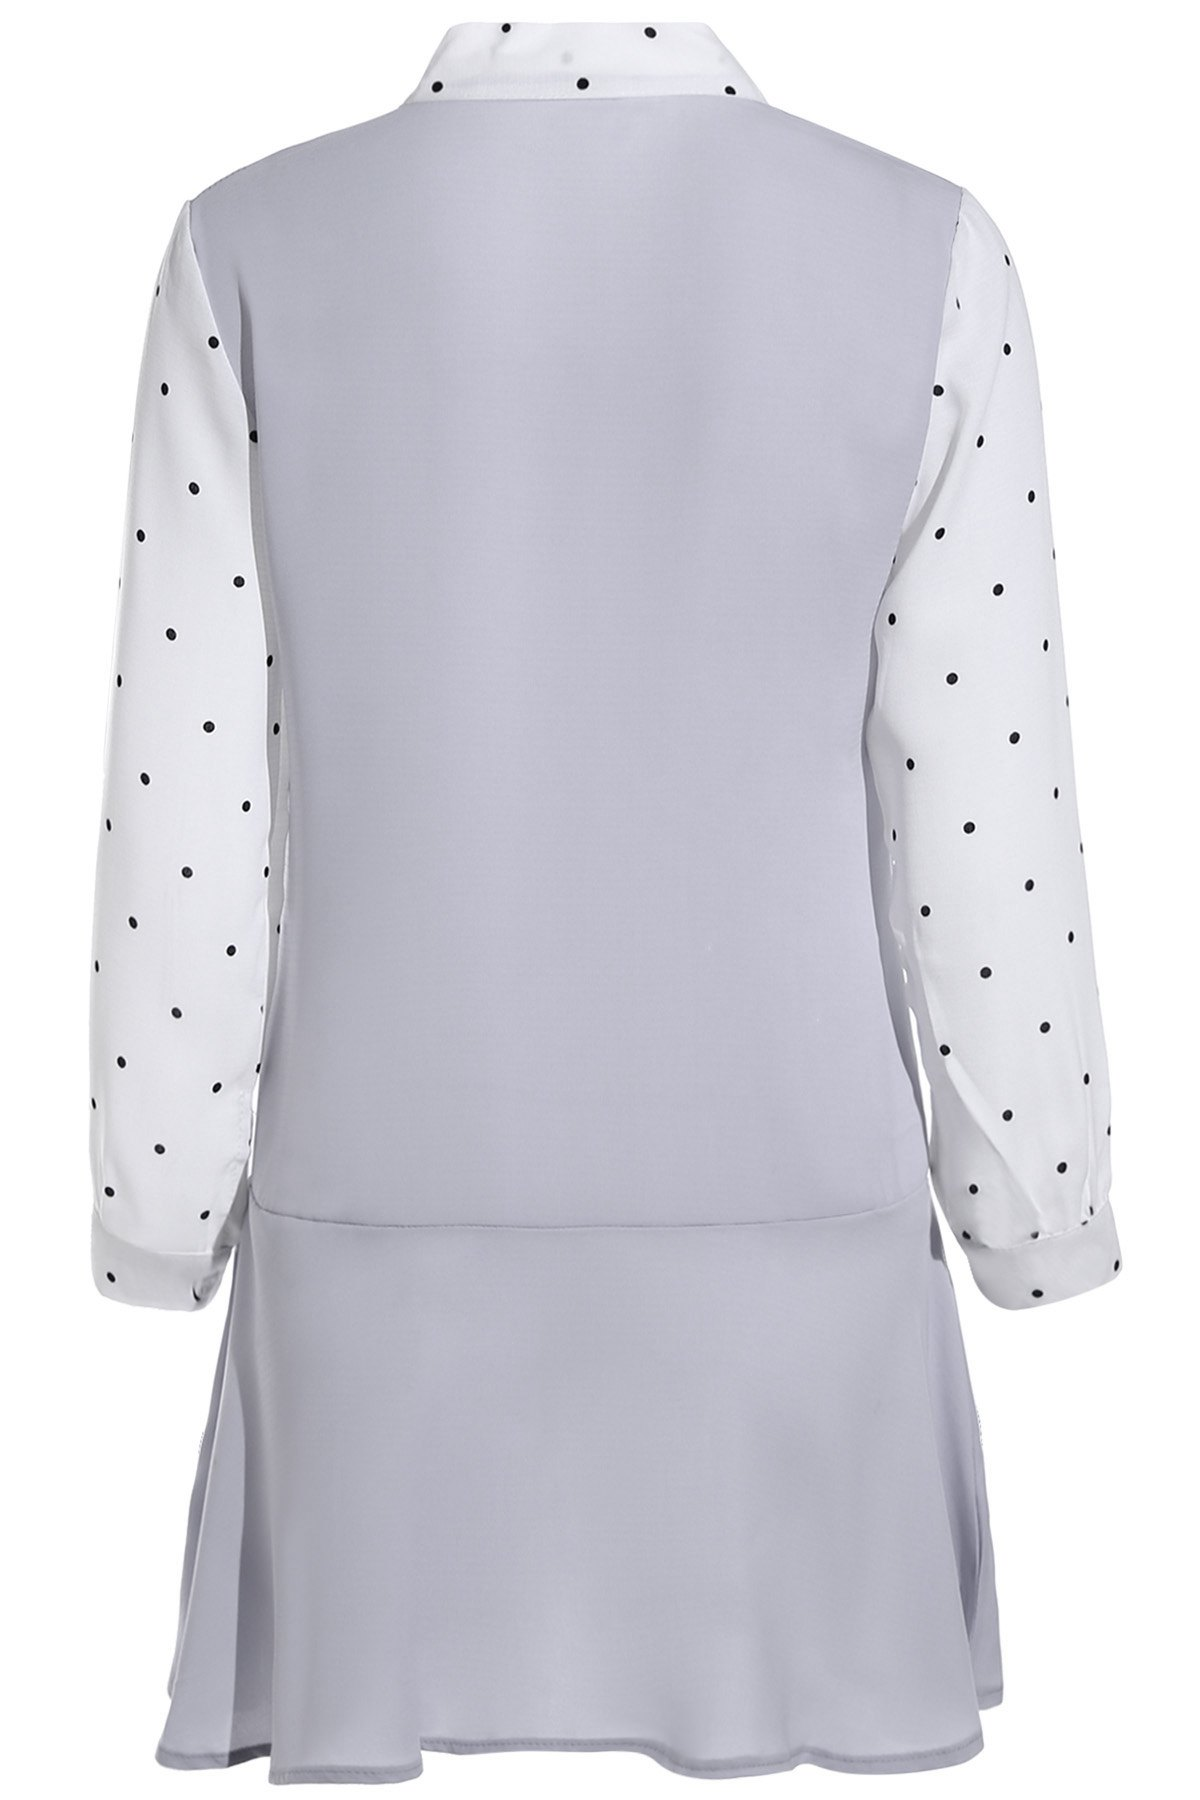 Polka Dot Self Tie Long Sleeve Dress - PURPLE ONE SIZE(FIT SIZE XS TO M)